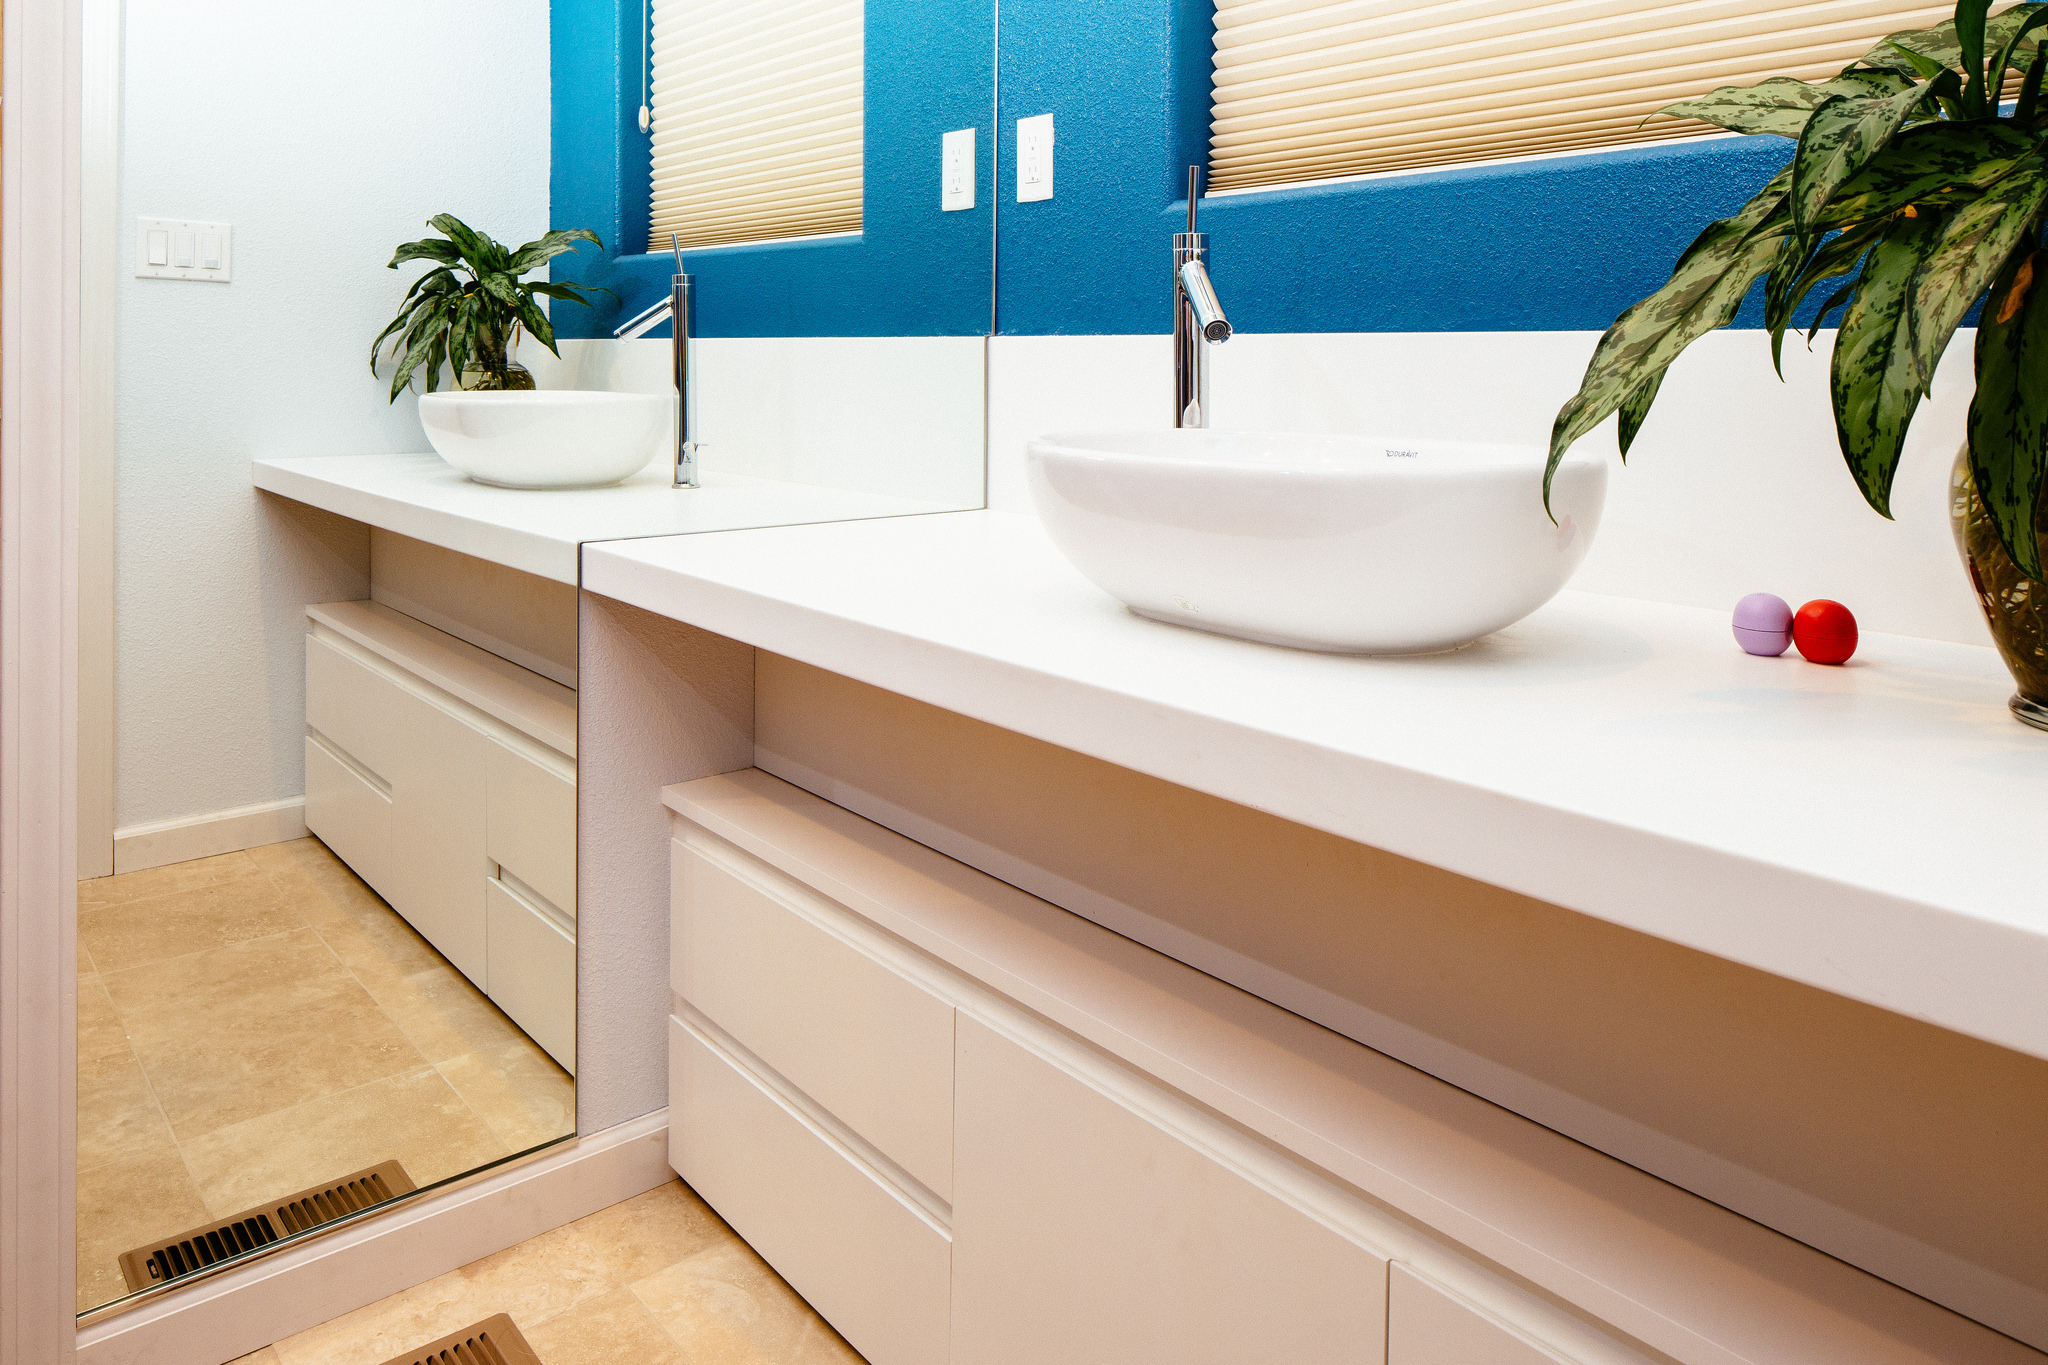 A white bathroom vanity with drawers and a sink over the white countertop.